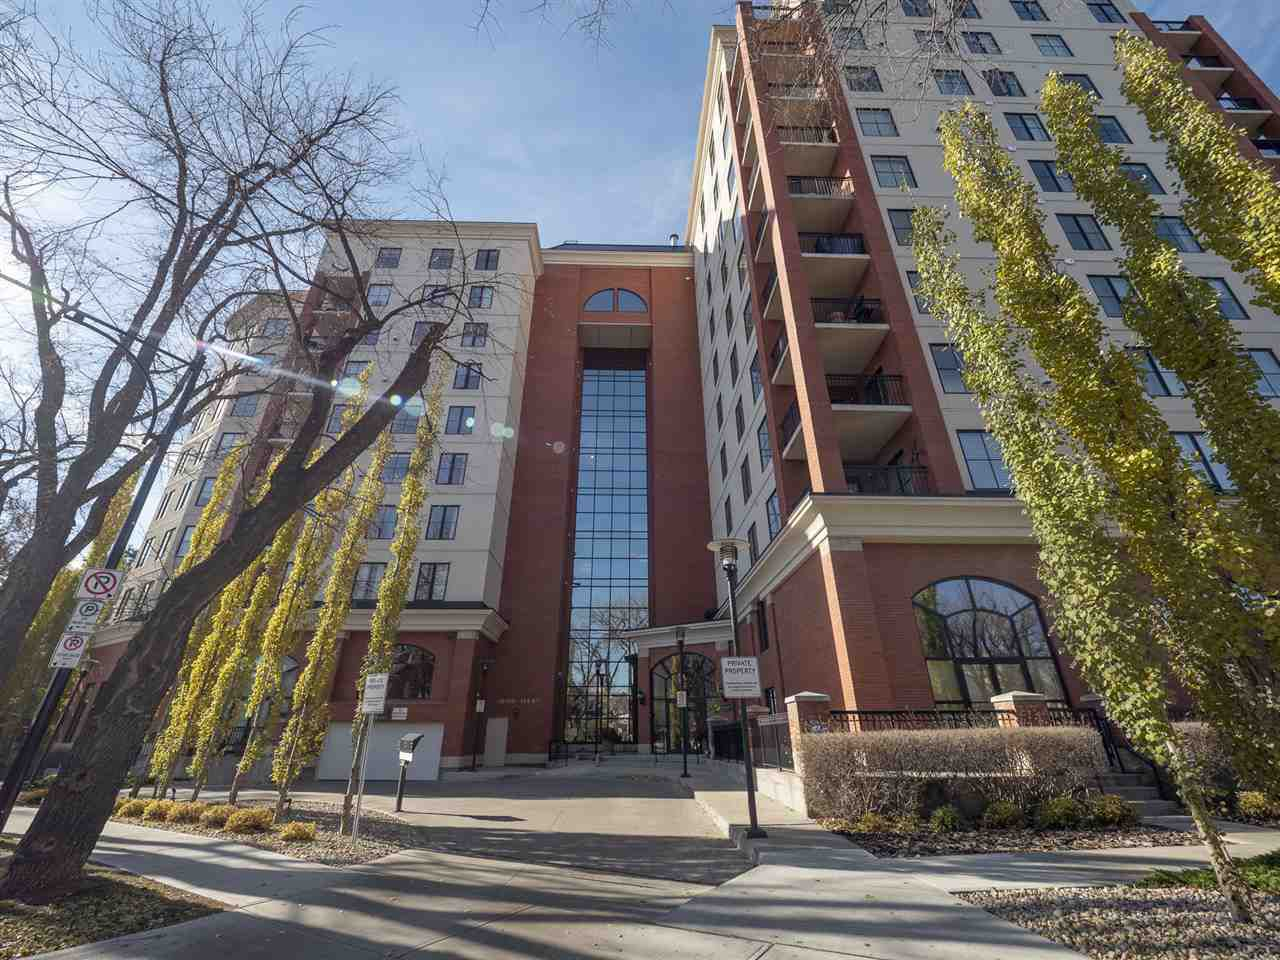 Main Photo: 404 10108 125 Street in Edmonton: Zone 07 Condo for sale : MLS®# E4152729